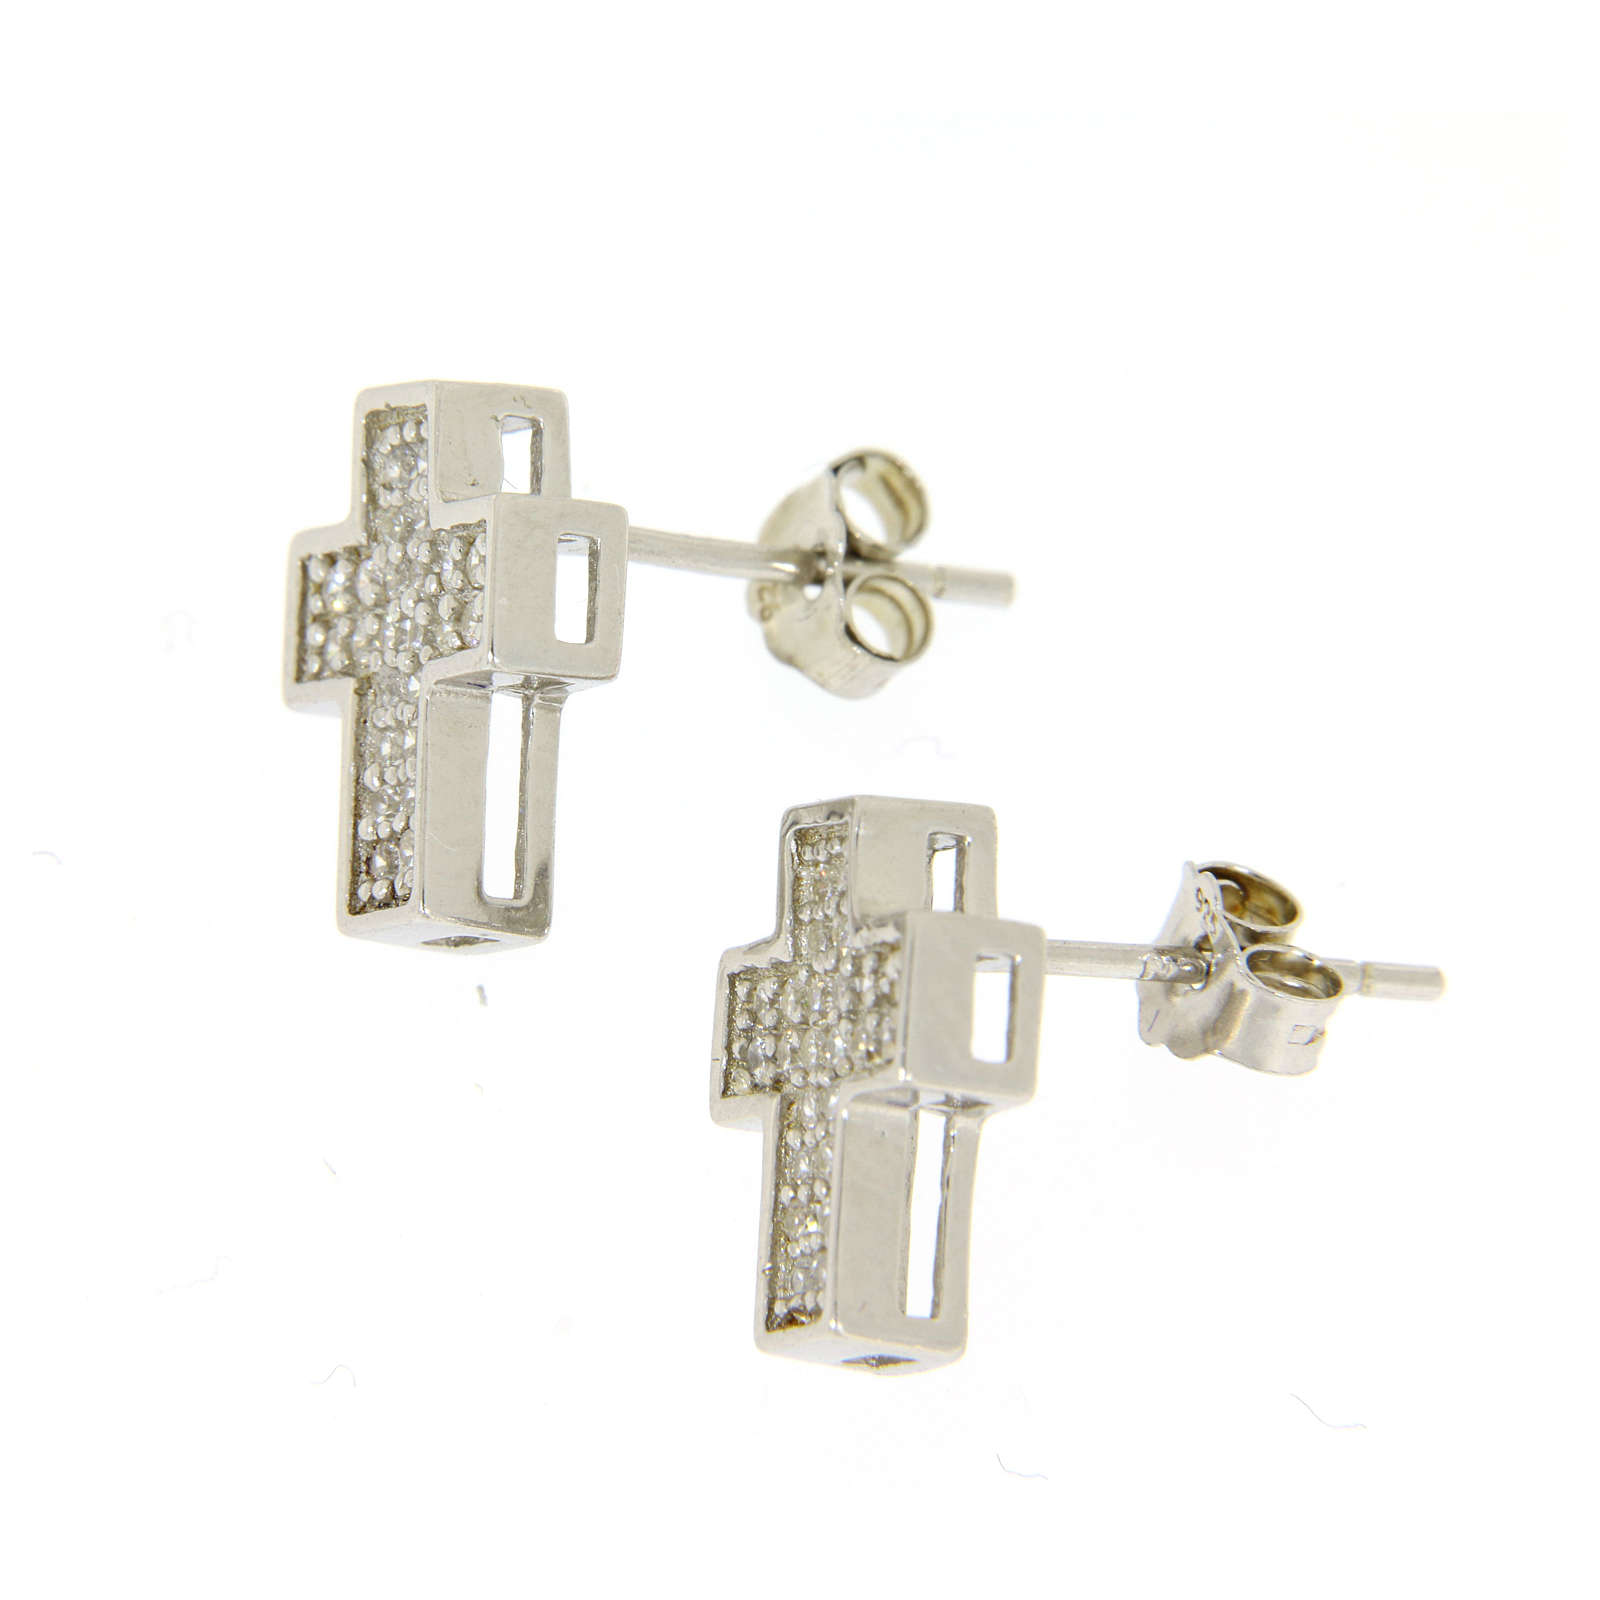 925 sterling silver parure: earrings, pendant chain and cross 4